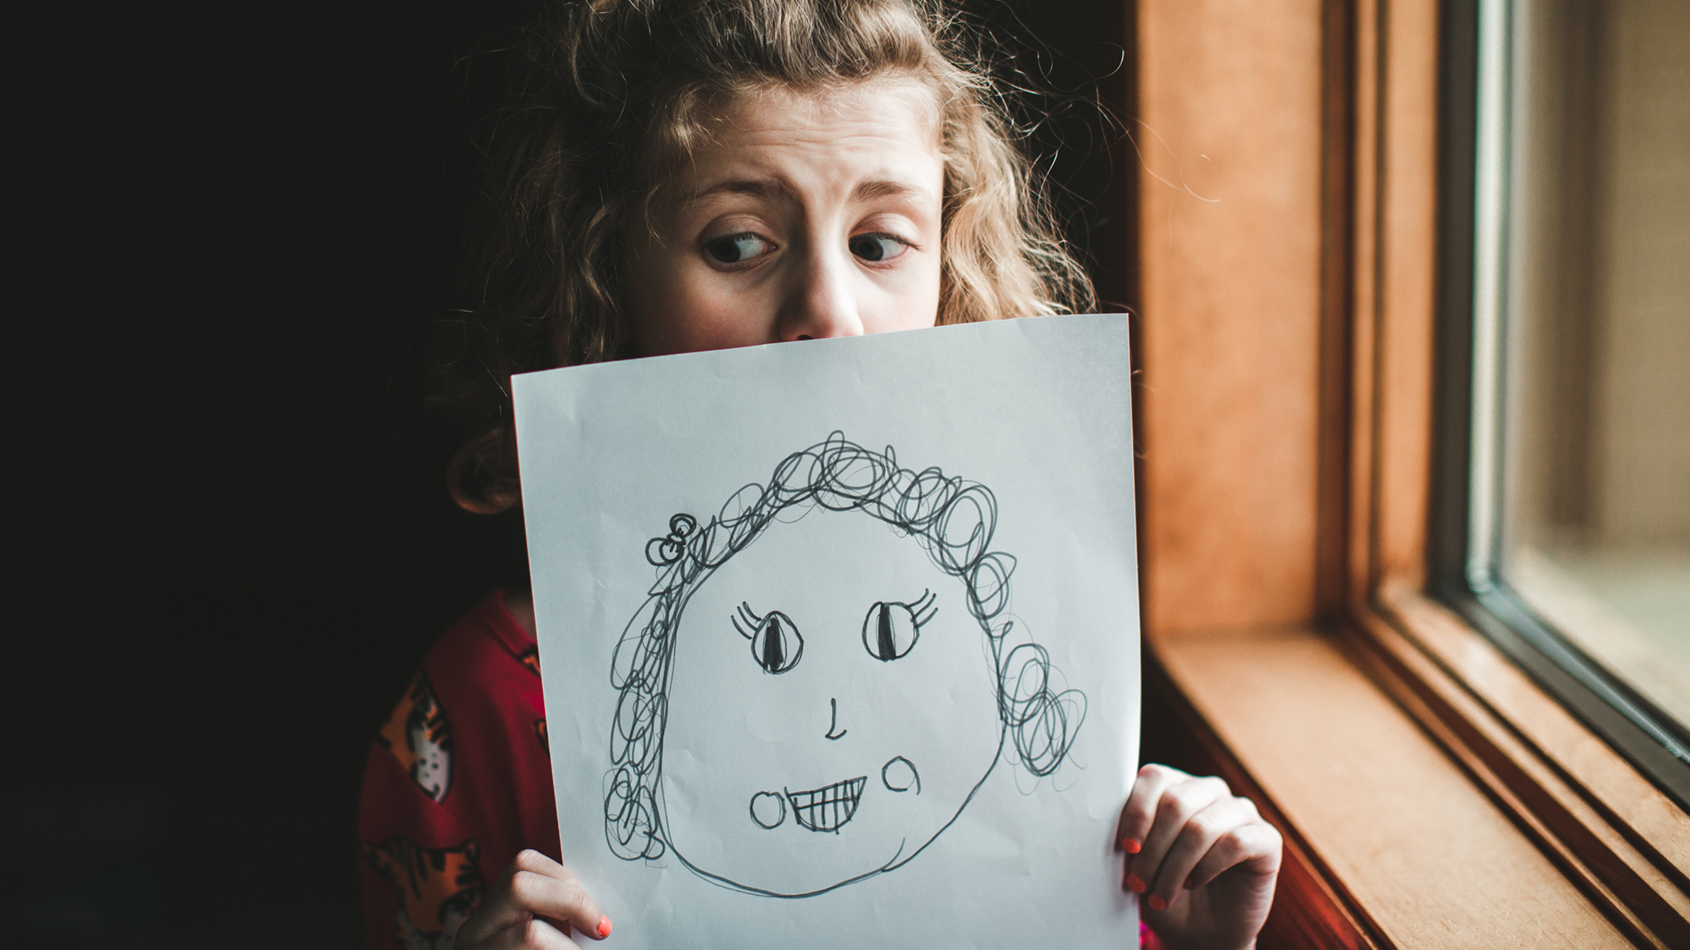 Little girl with curly hair holds up a self portrait that she drew of herself and peeks over it while standing indoors next to a window.